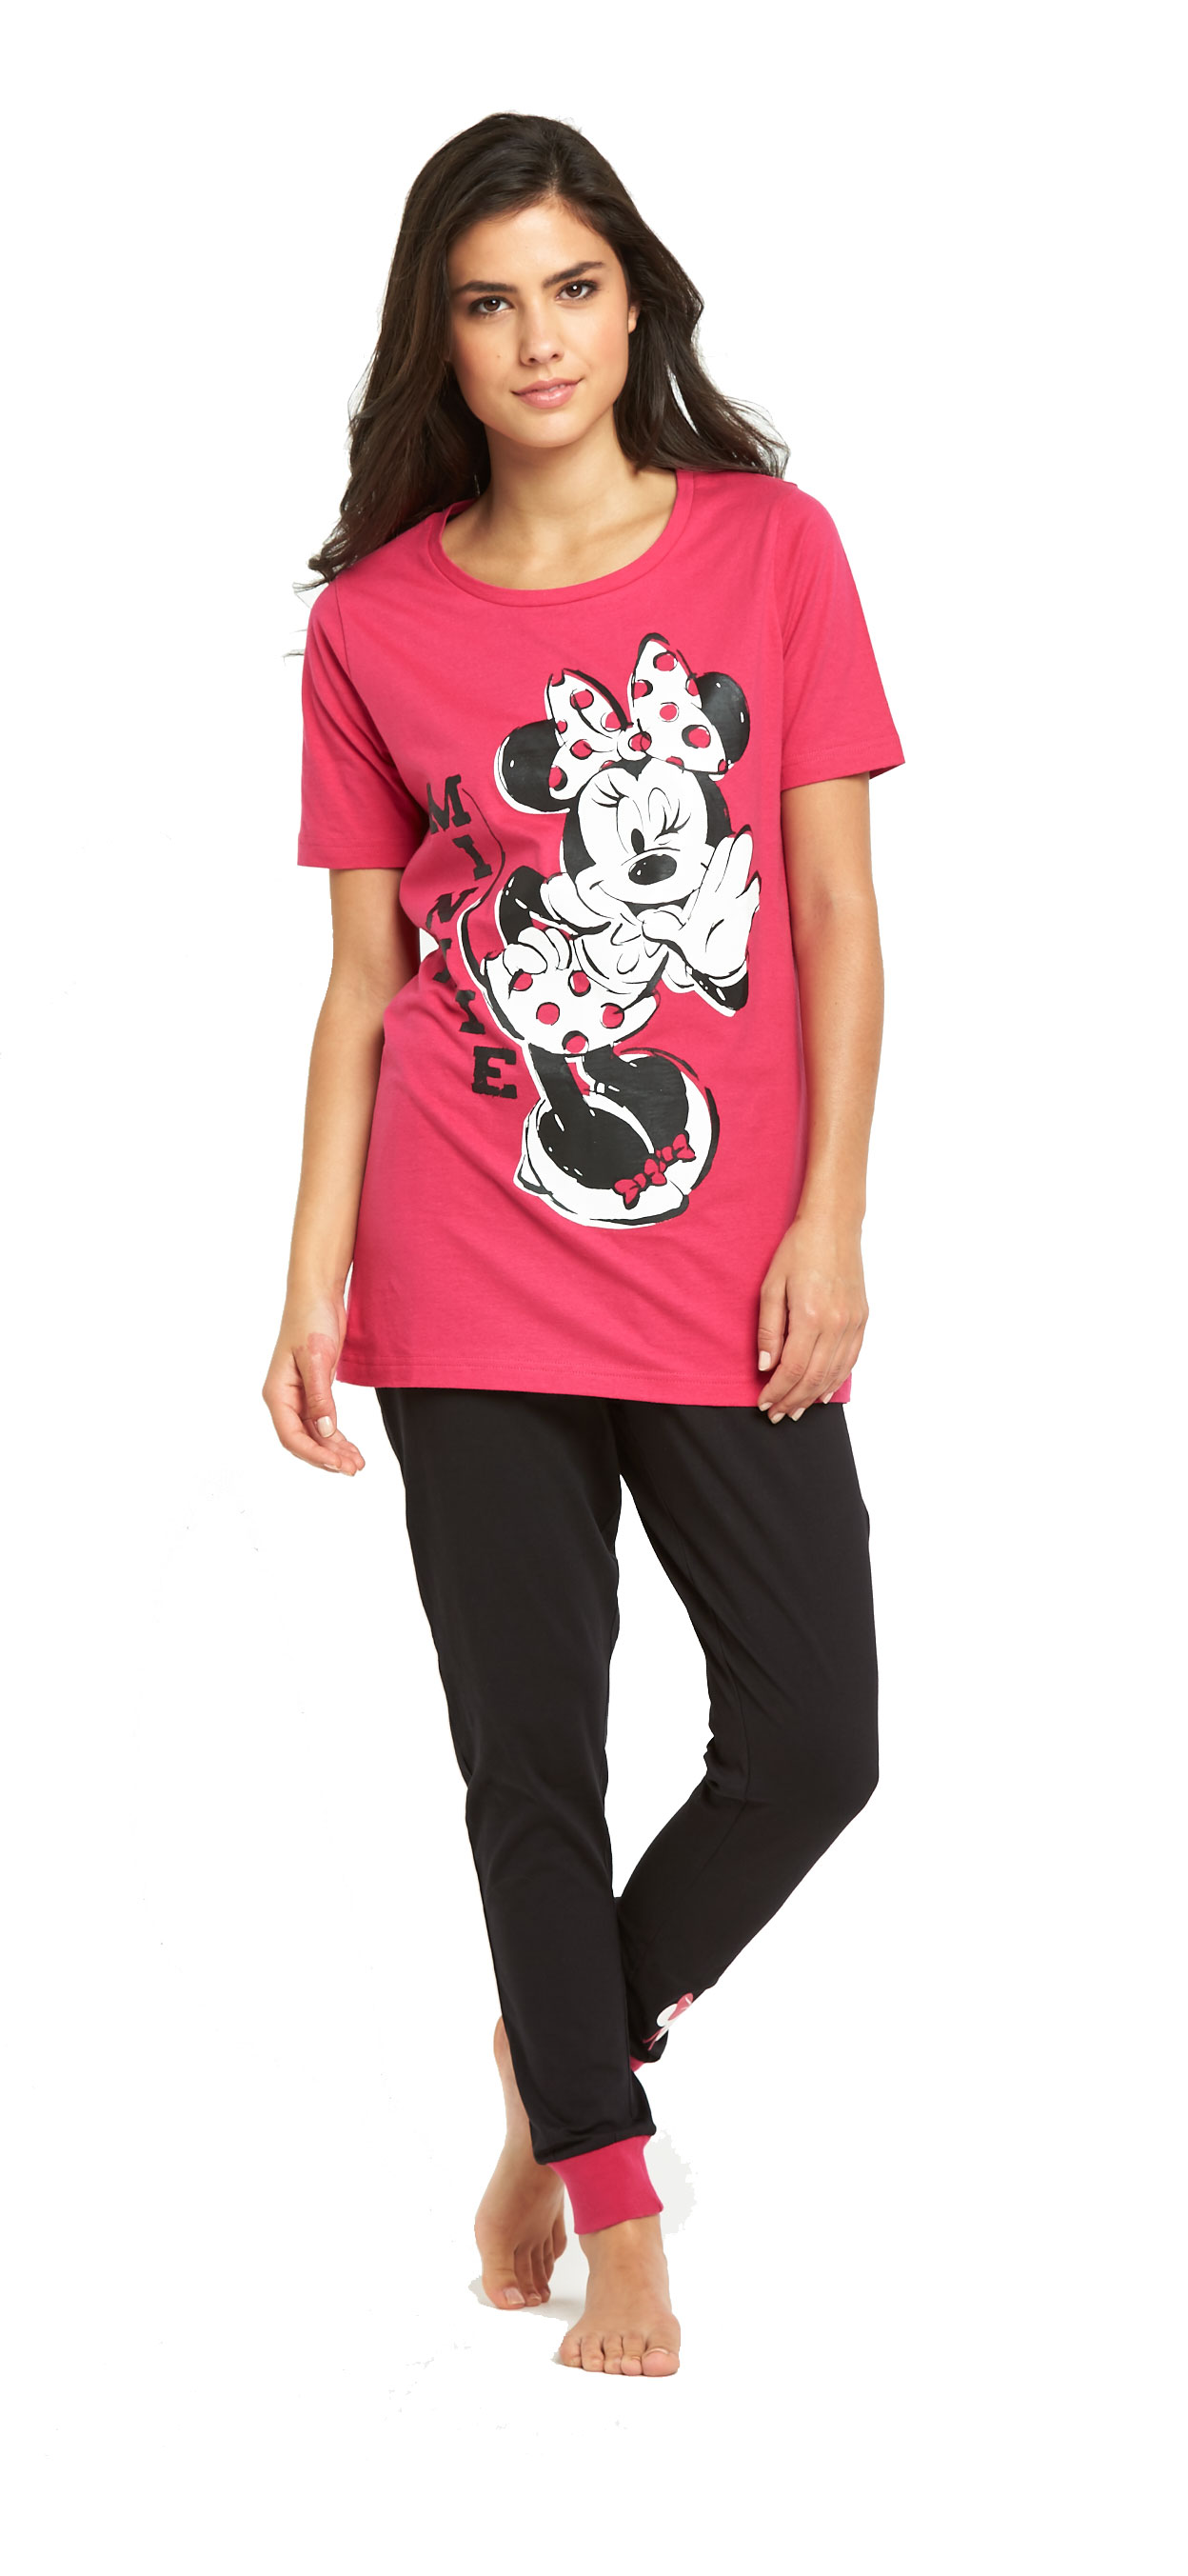 Minnie Mouse Pyjama Top And Cuffed Leggings